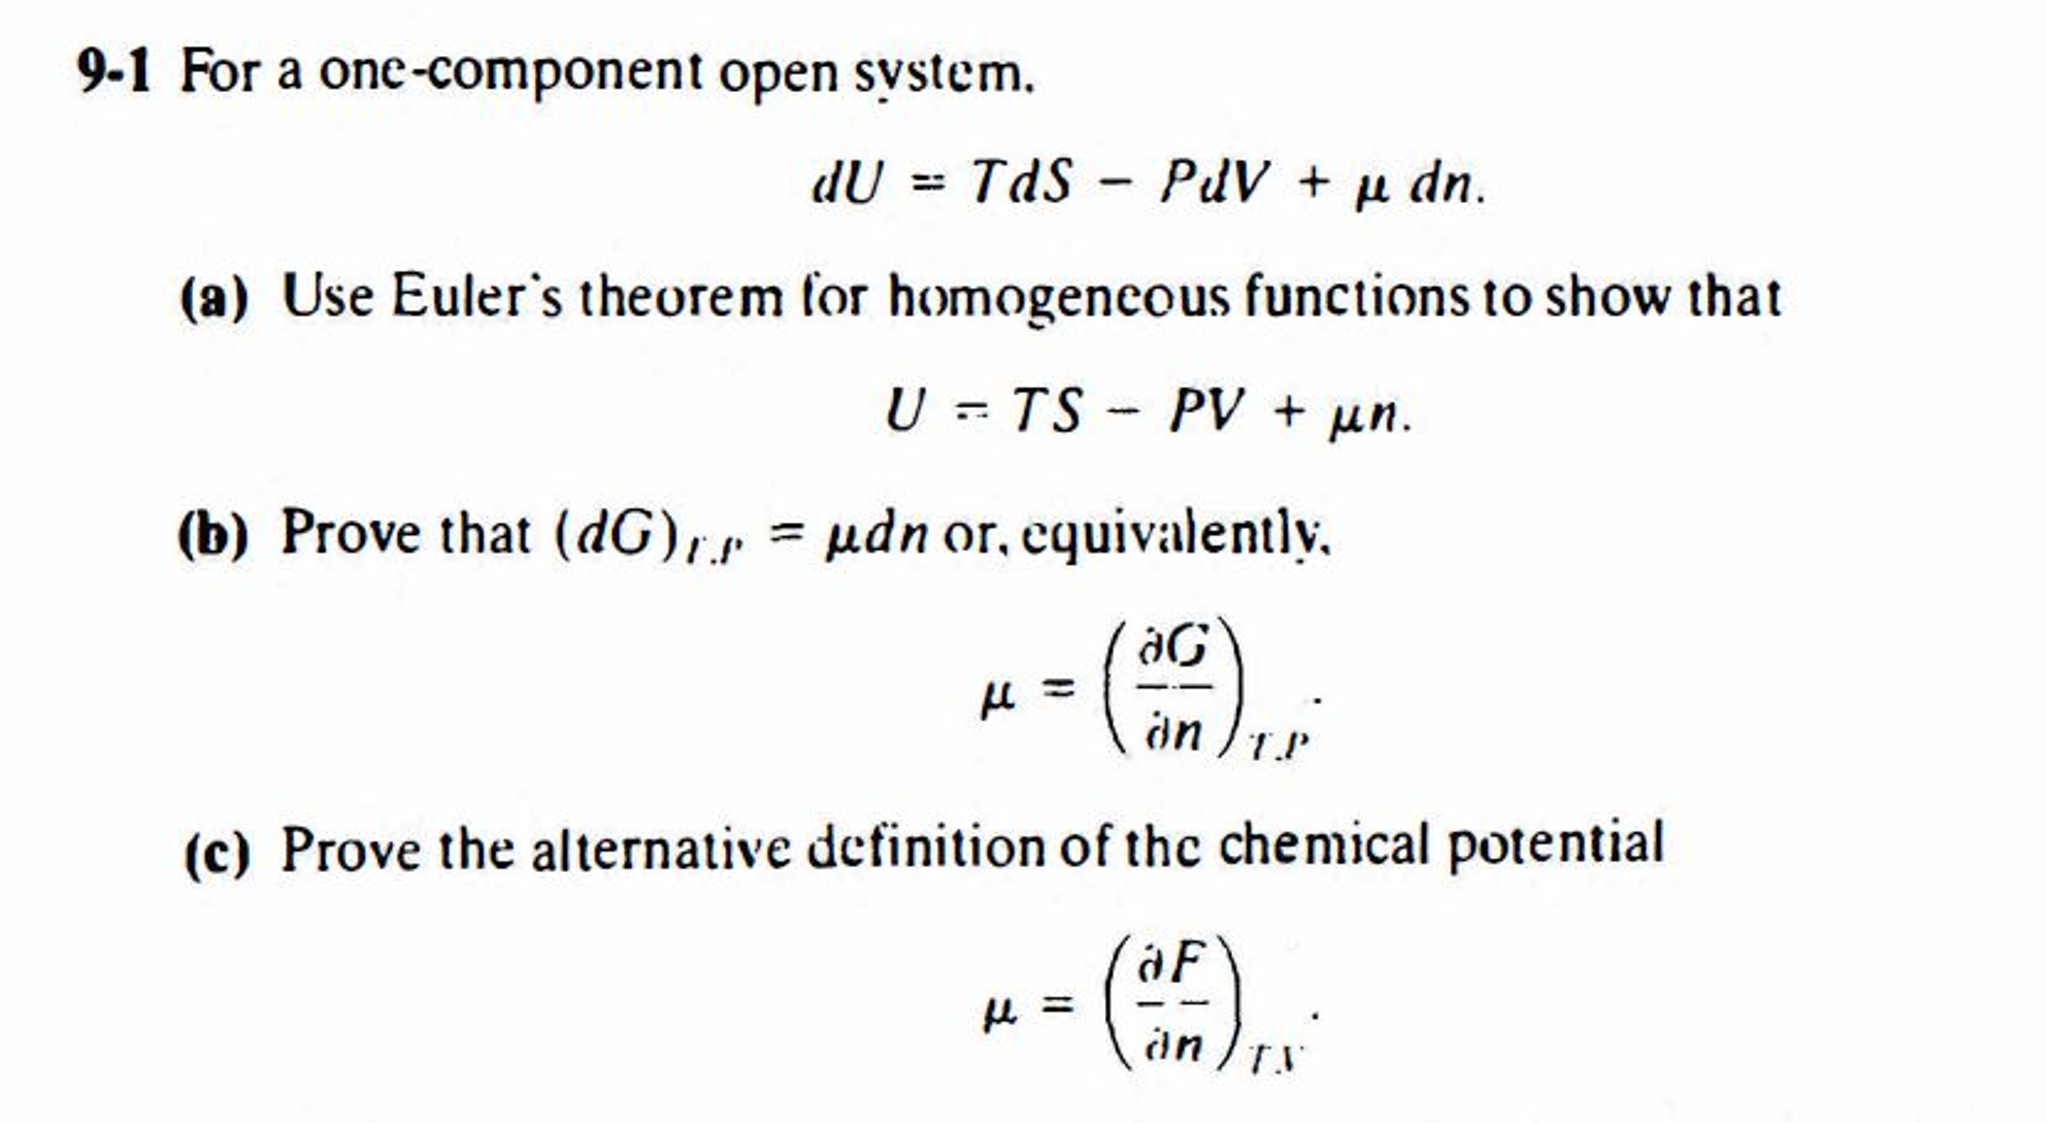 solved: for a one-component open system. du = tds - pdv +